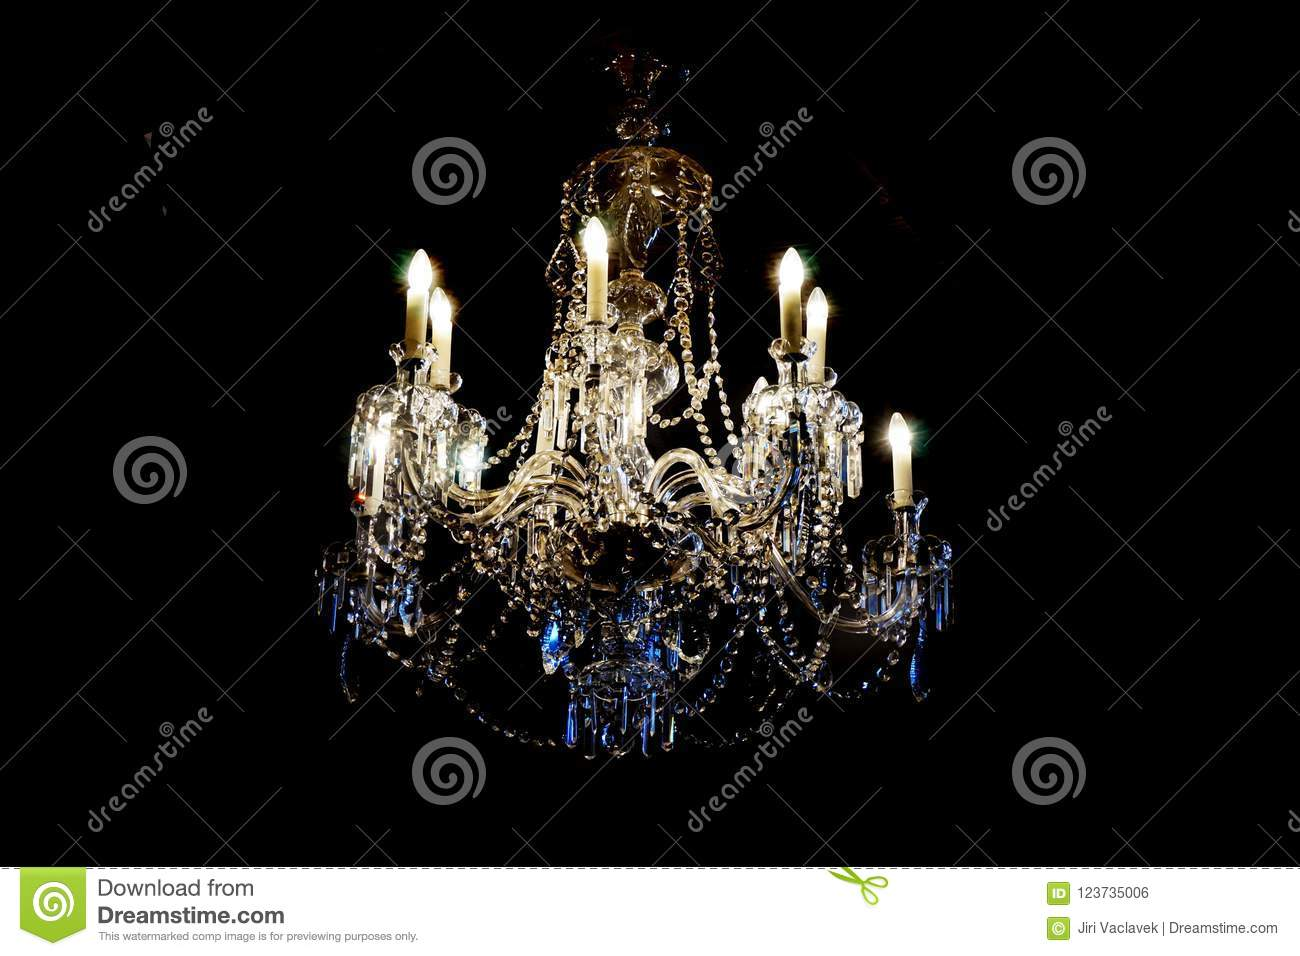 Czech crystal chandelier stock photo image of electricity 123735006 download czech crystal chandelier stock photo image of electricity 123735006 aloadofball Image collections